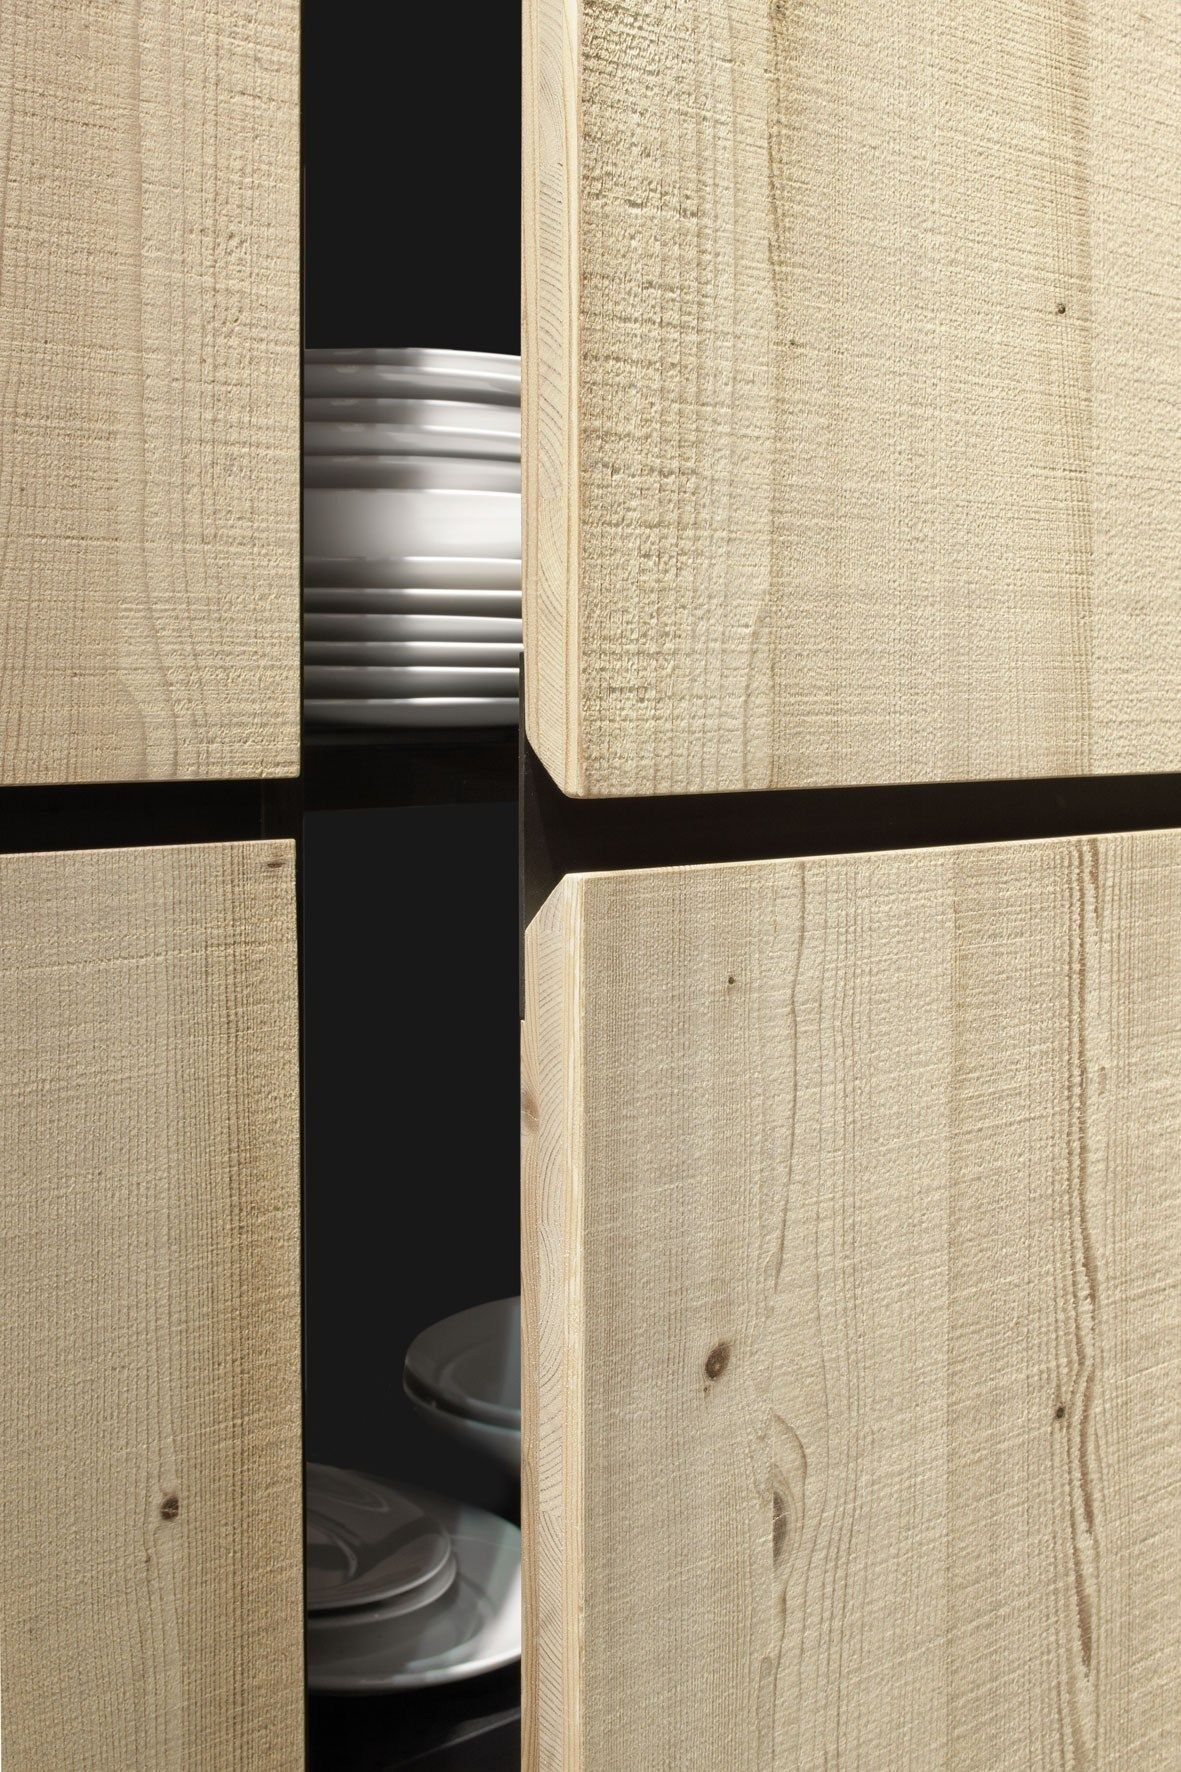 Cabinet - cupboard - detail - wooden front - recessed handle ...